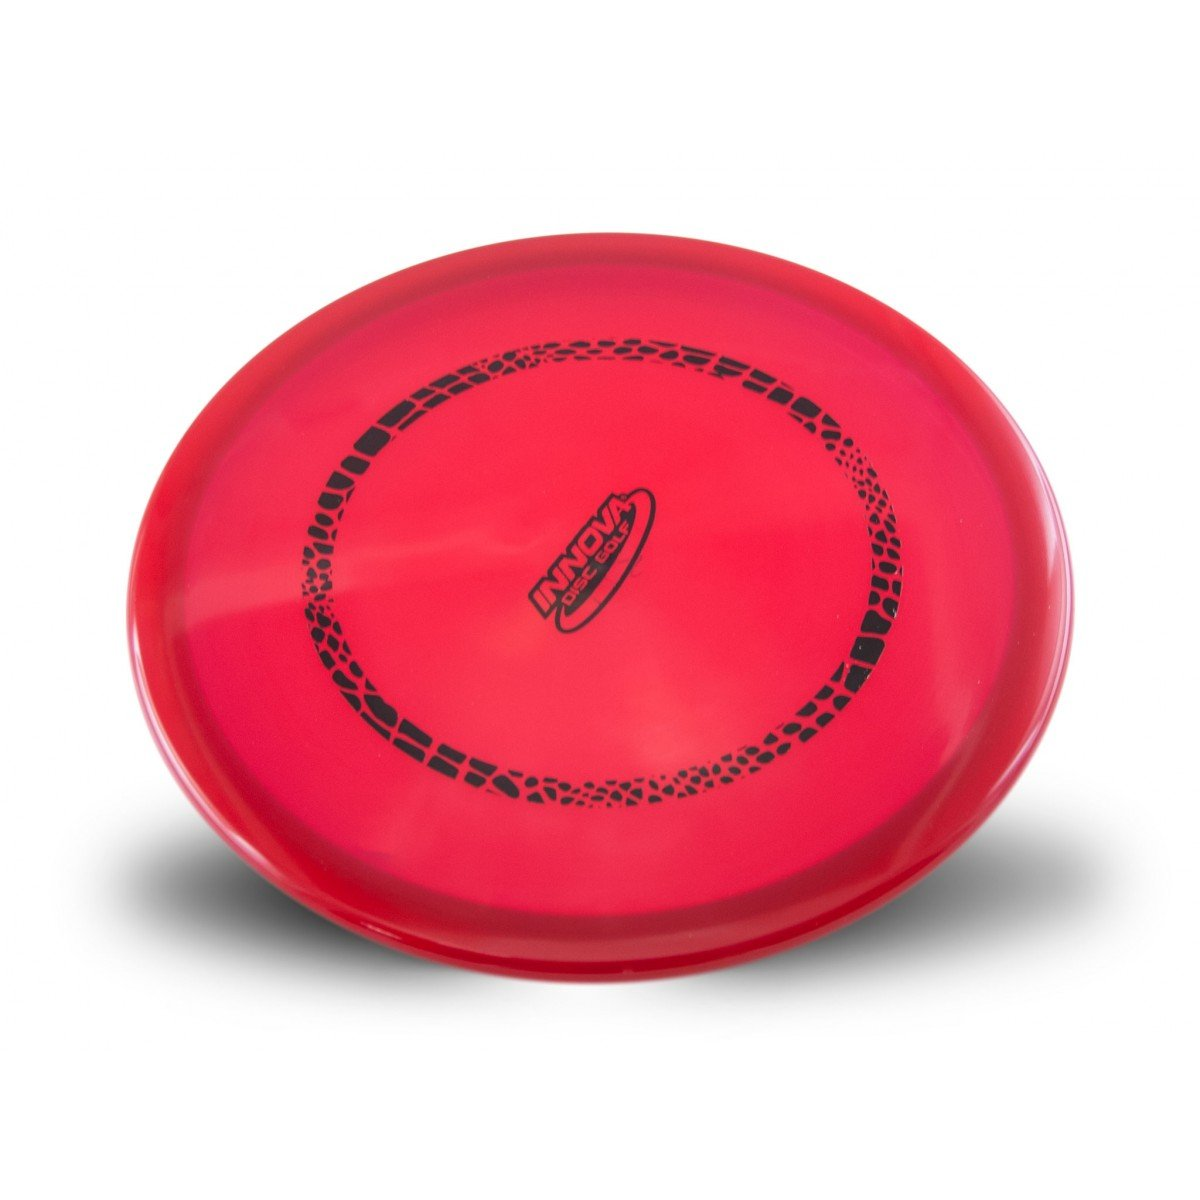 Innova Limited Edition CFR Pre-Release Champion Gator3 Mid-Range Golf Disc [Colors May Vary] - 173-175g